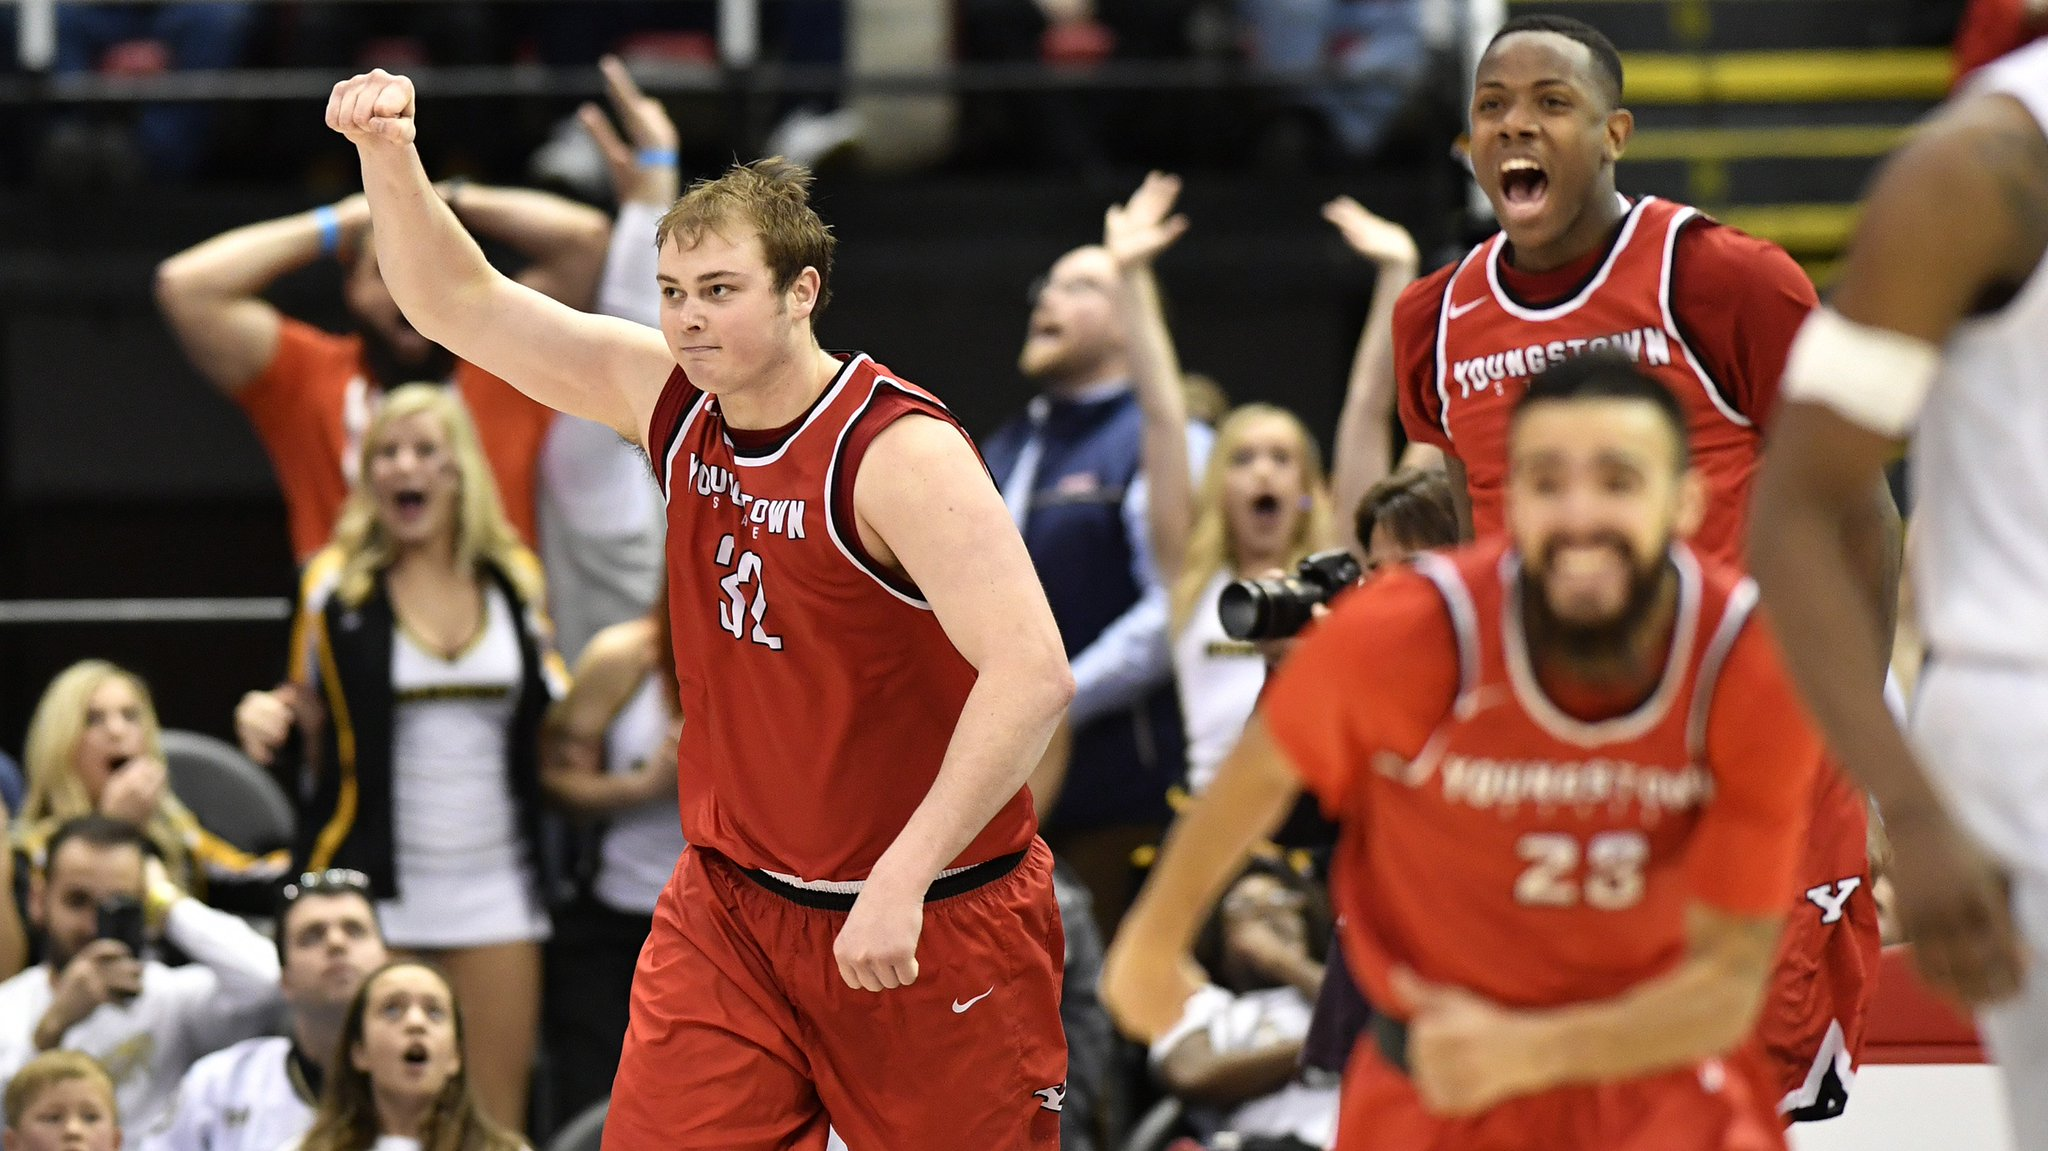 @YSUMensHoops knocks off top seeded Oakland in a crazy finish. https://t.co/vV6jKZqCm7 #MotorCityMadness https://t.co/8WoWqVRCzZ